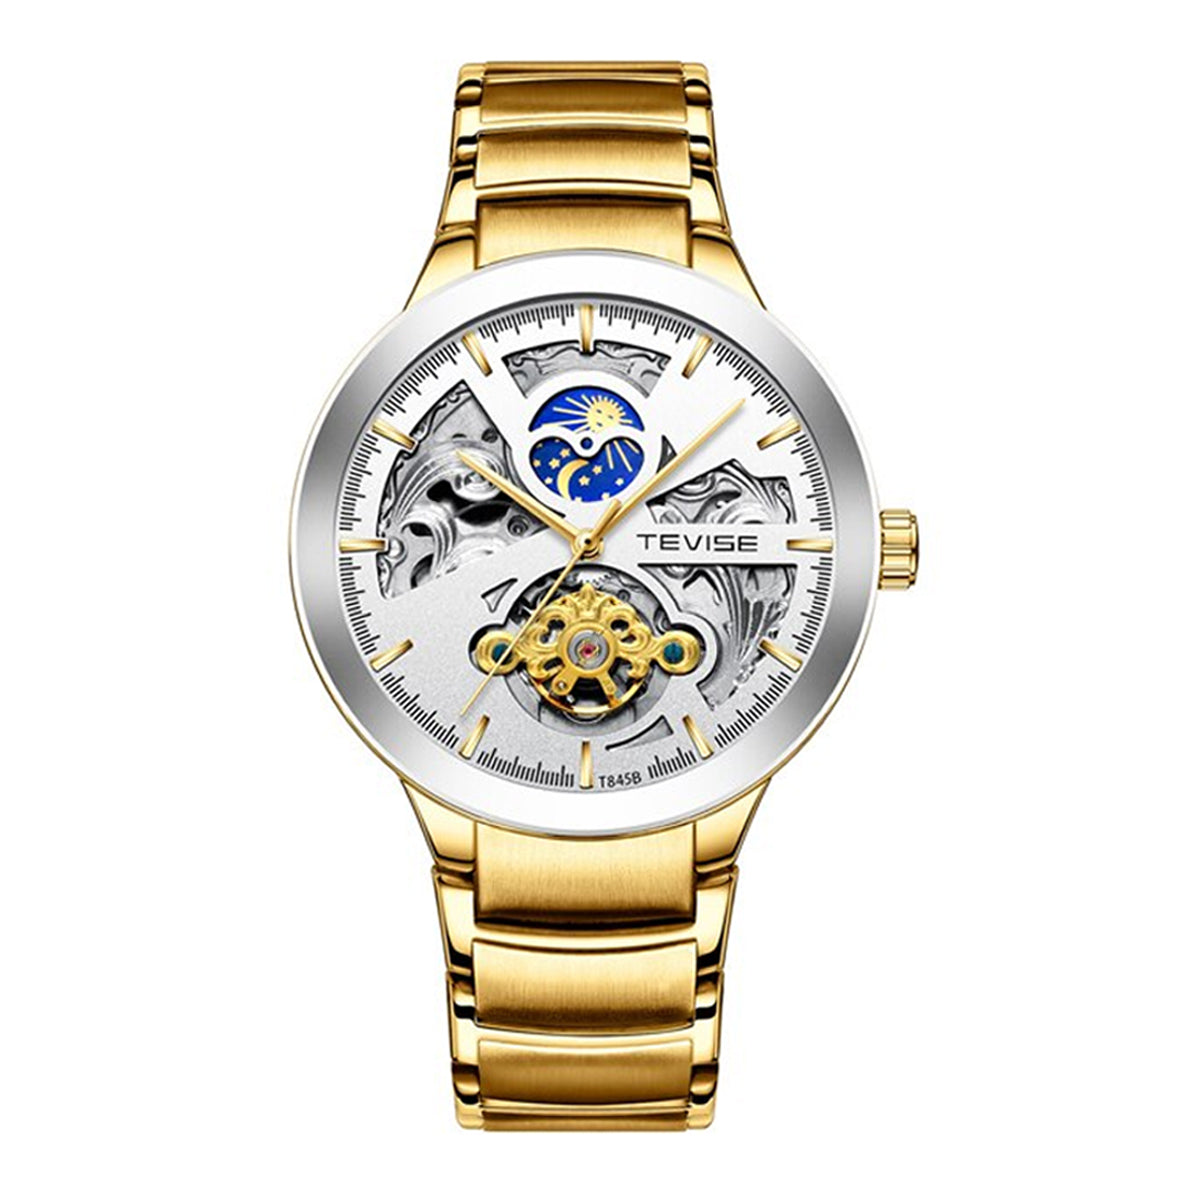 Shock-and-water-resistant Automatic Self-winding Mechanical Watch for Men